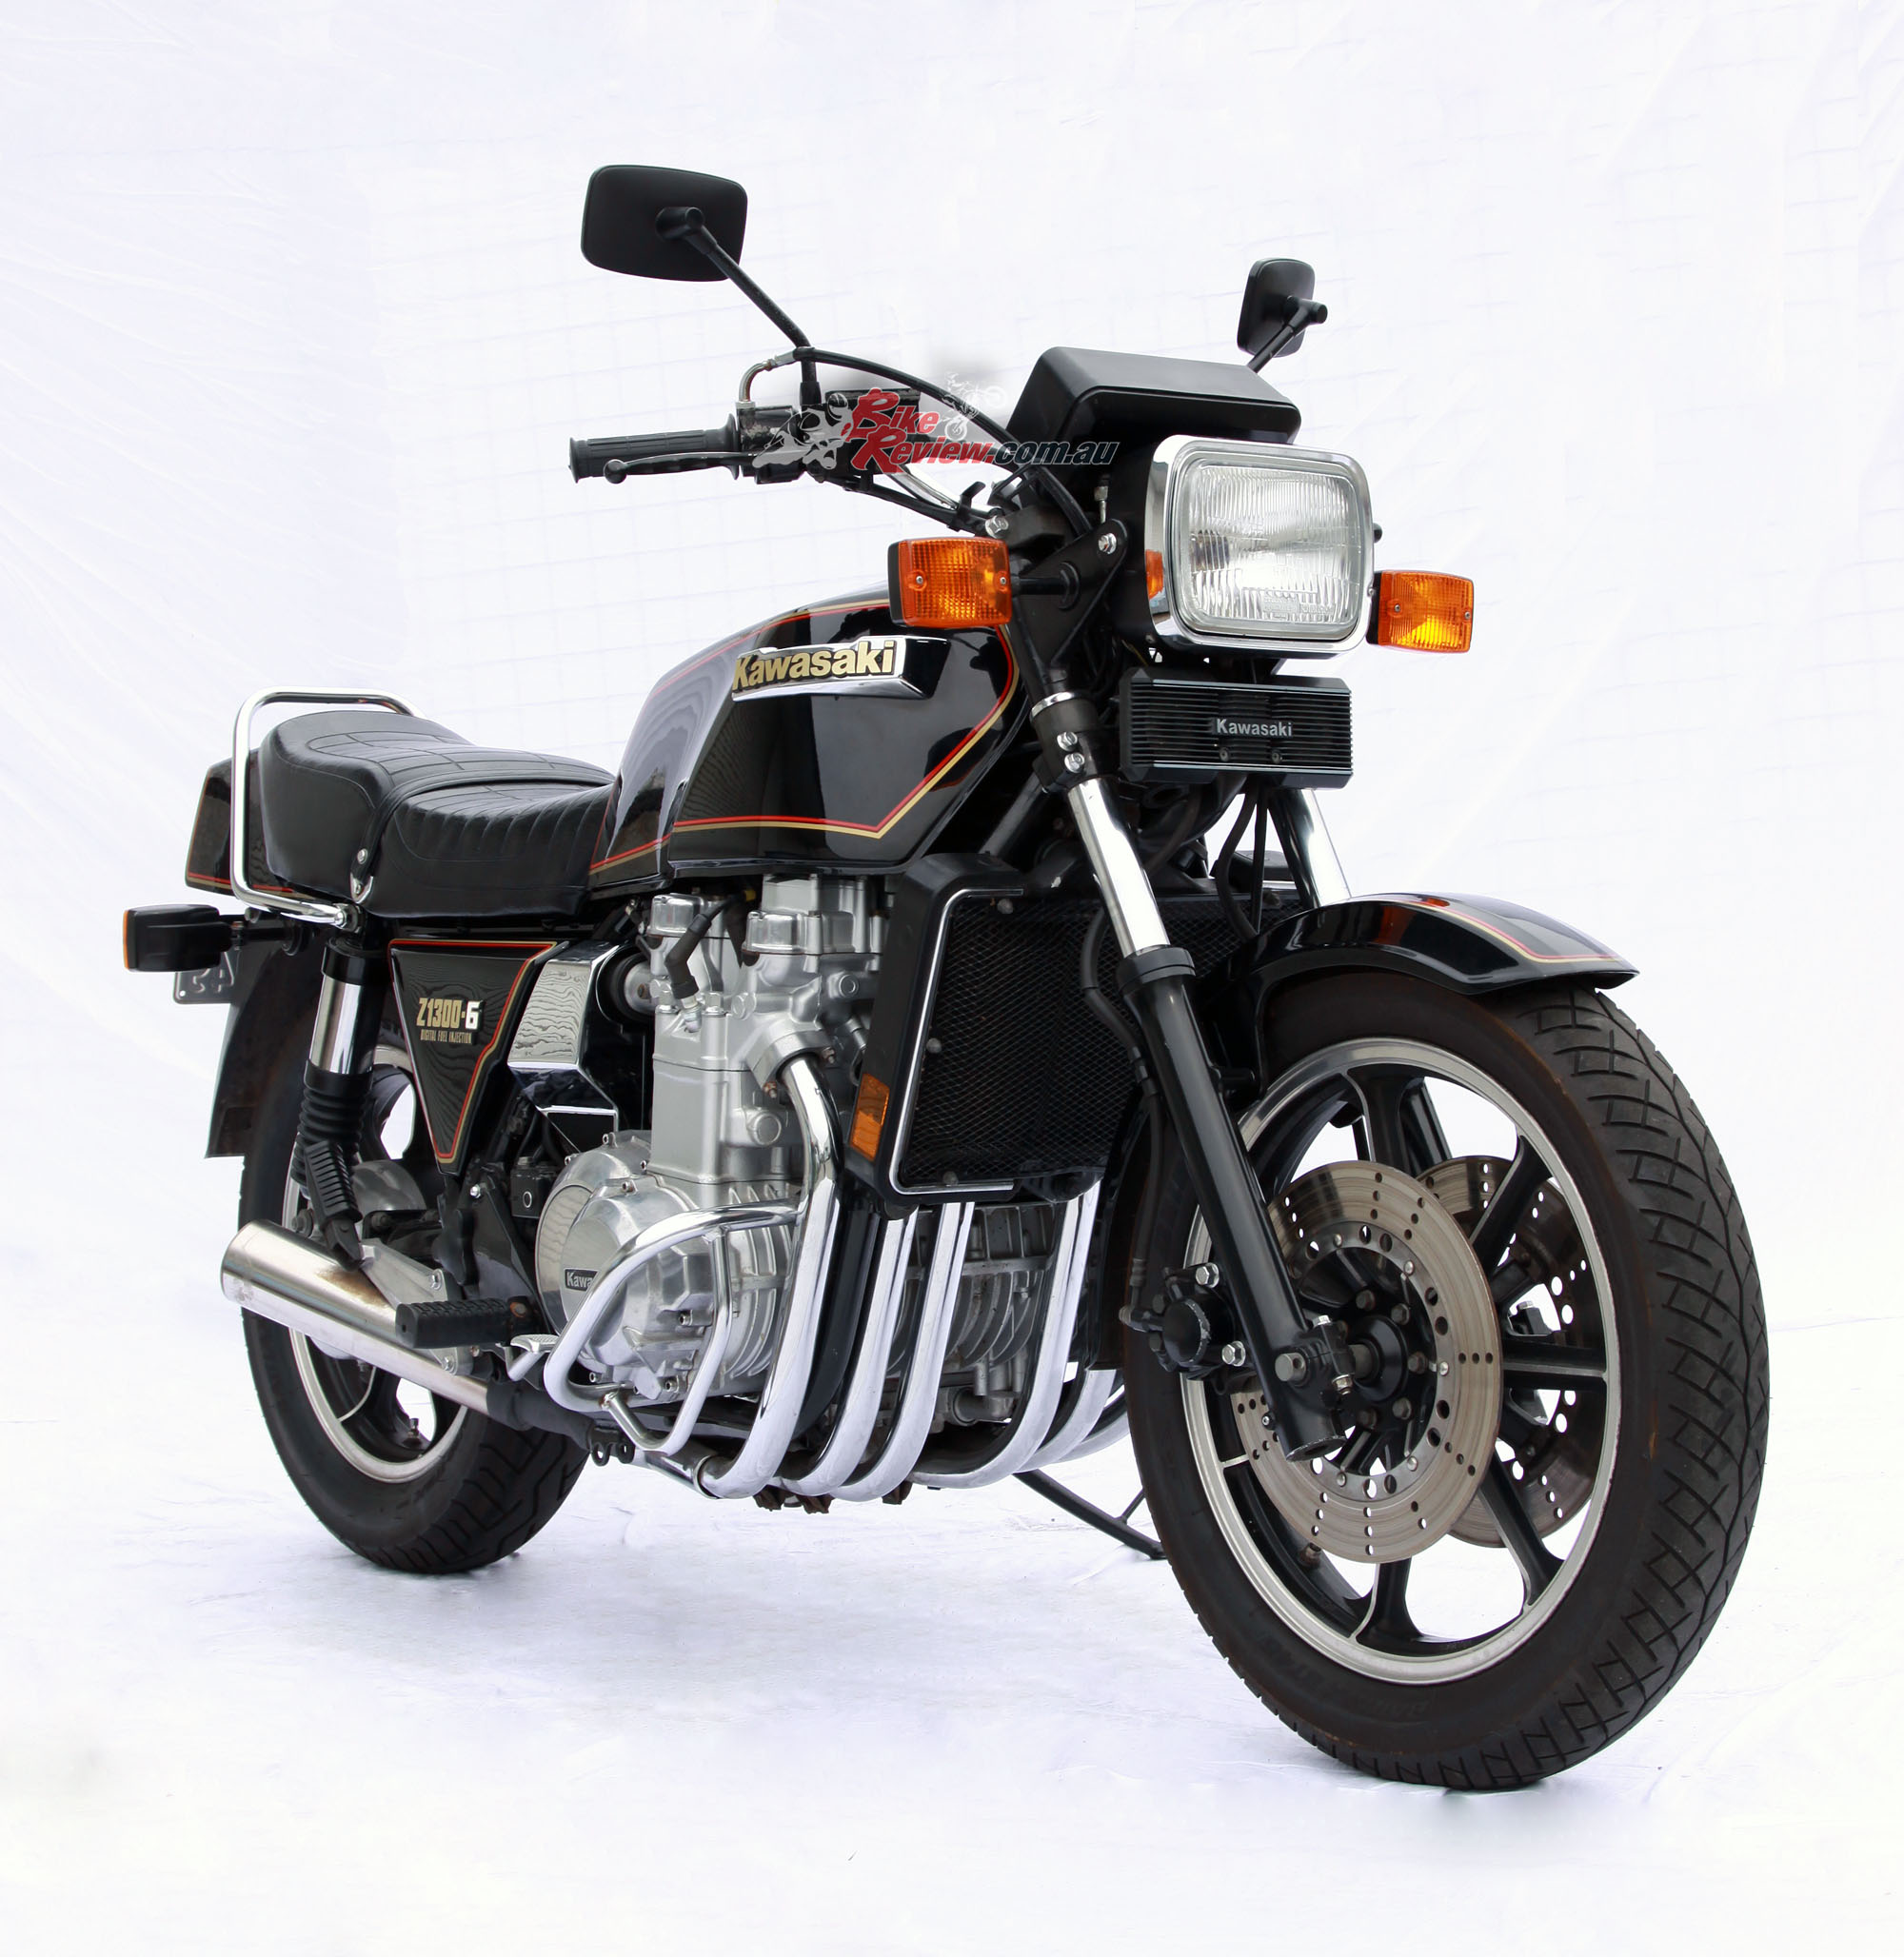 Classic collectable kawasaki z1300 six bike review kawasaki z1300 six bike review 13 publicscrutiny Choice Image